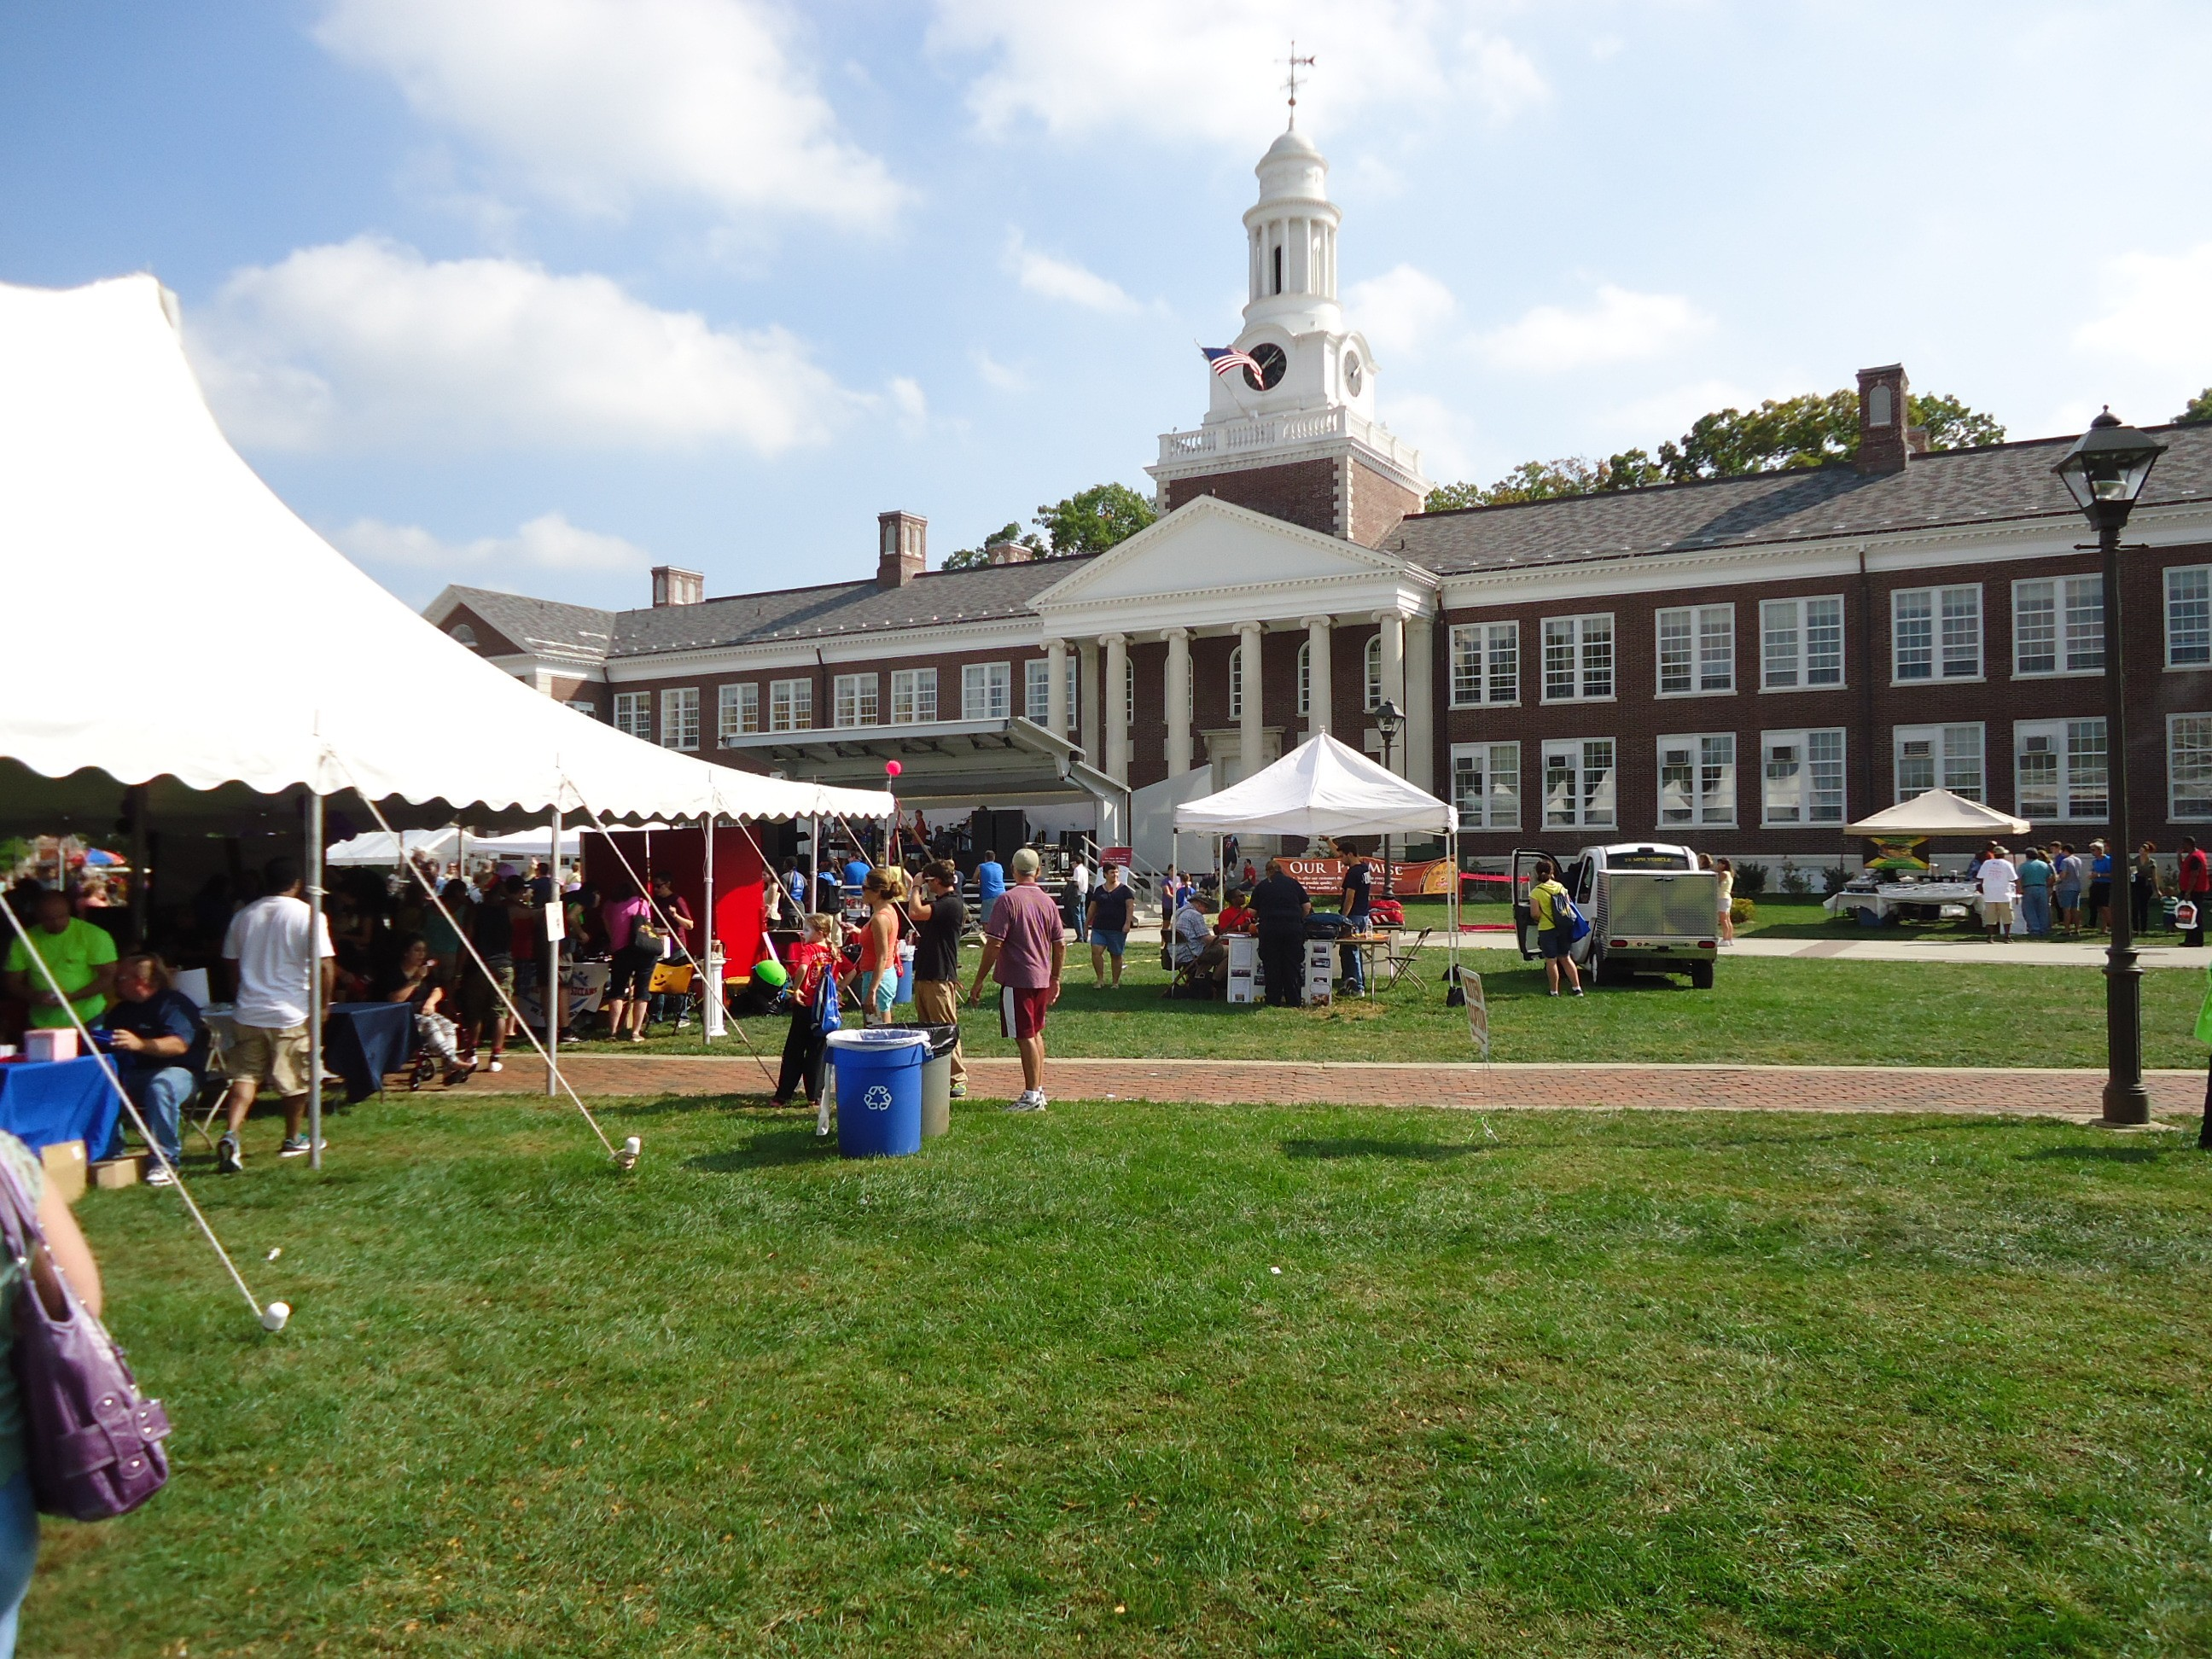 ... The College of New Jersey outdoor fair event music and festivities.JPG: commons.wikimedia.org/wiki/File:TCNJ_The_College_of_New_Jersey...